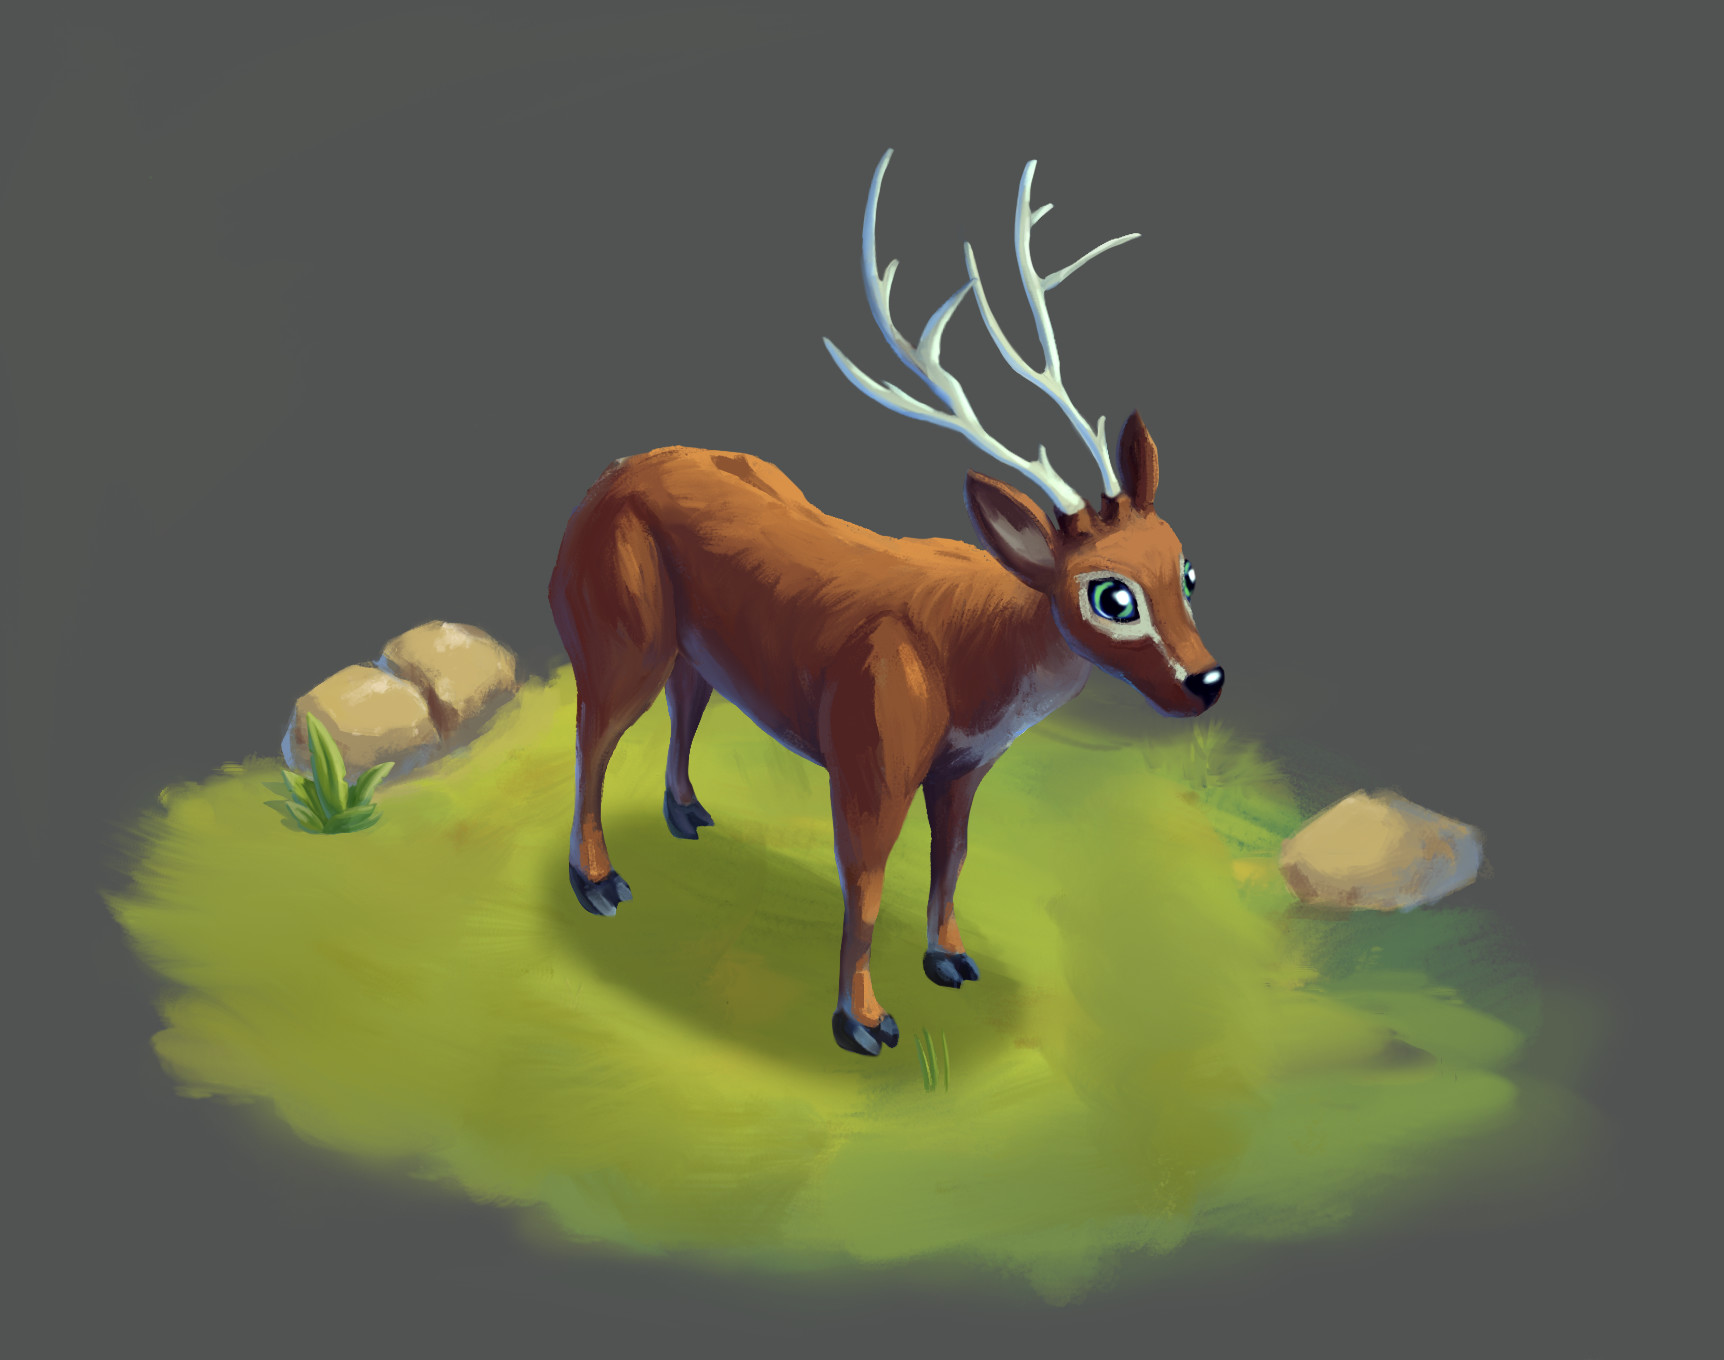 ArtStation - Deer  Spine 2D Animation Test, Art  Ankhn